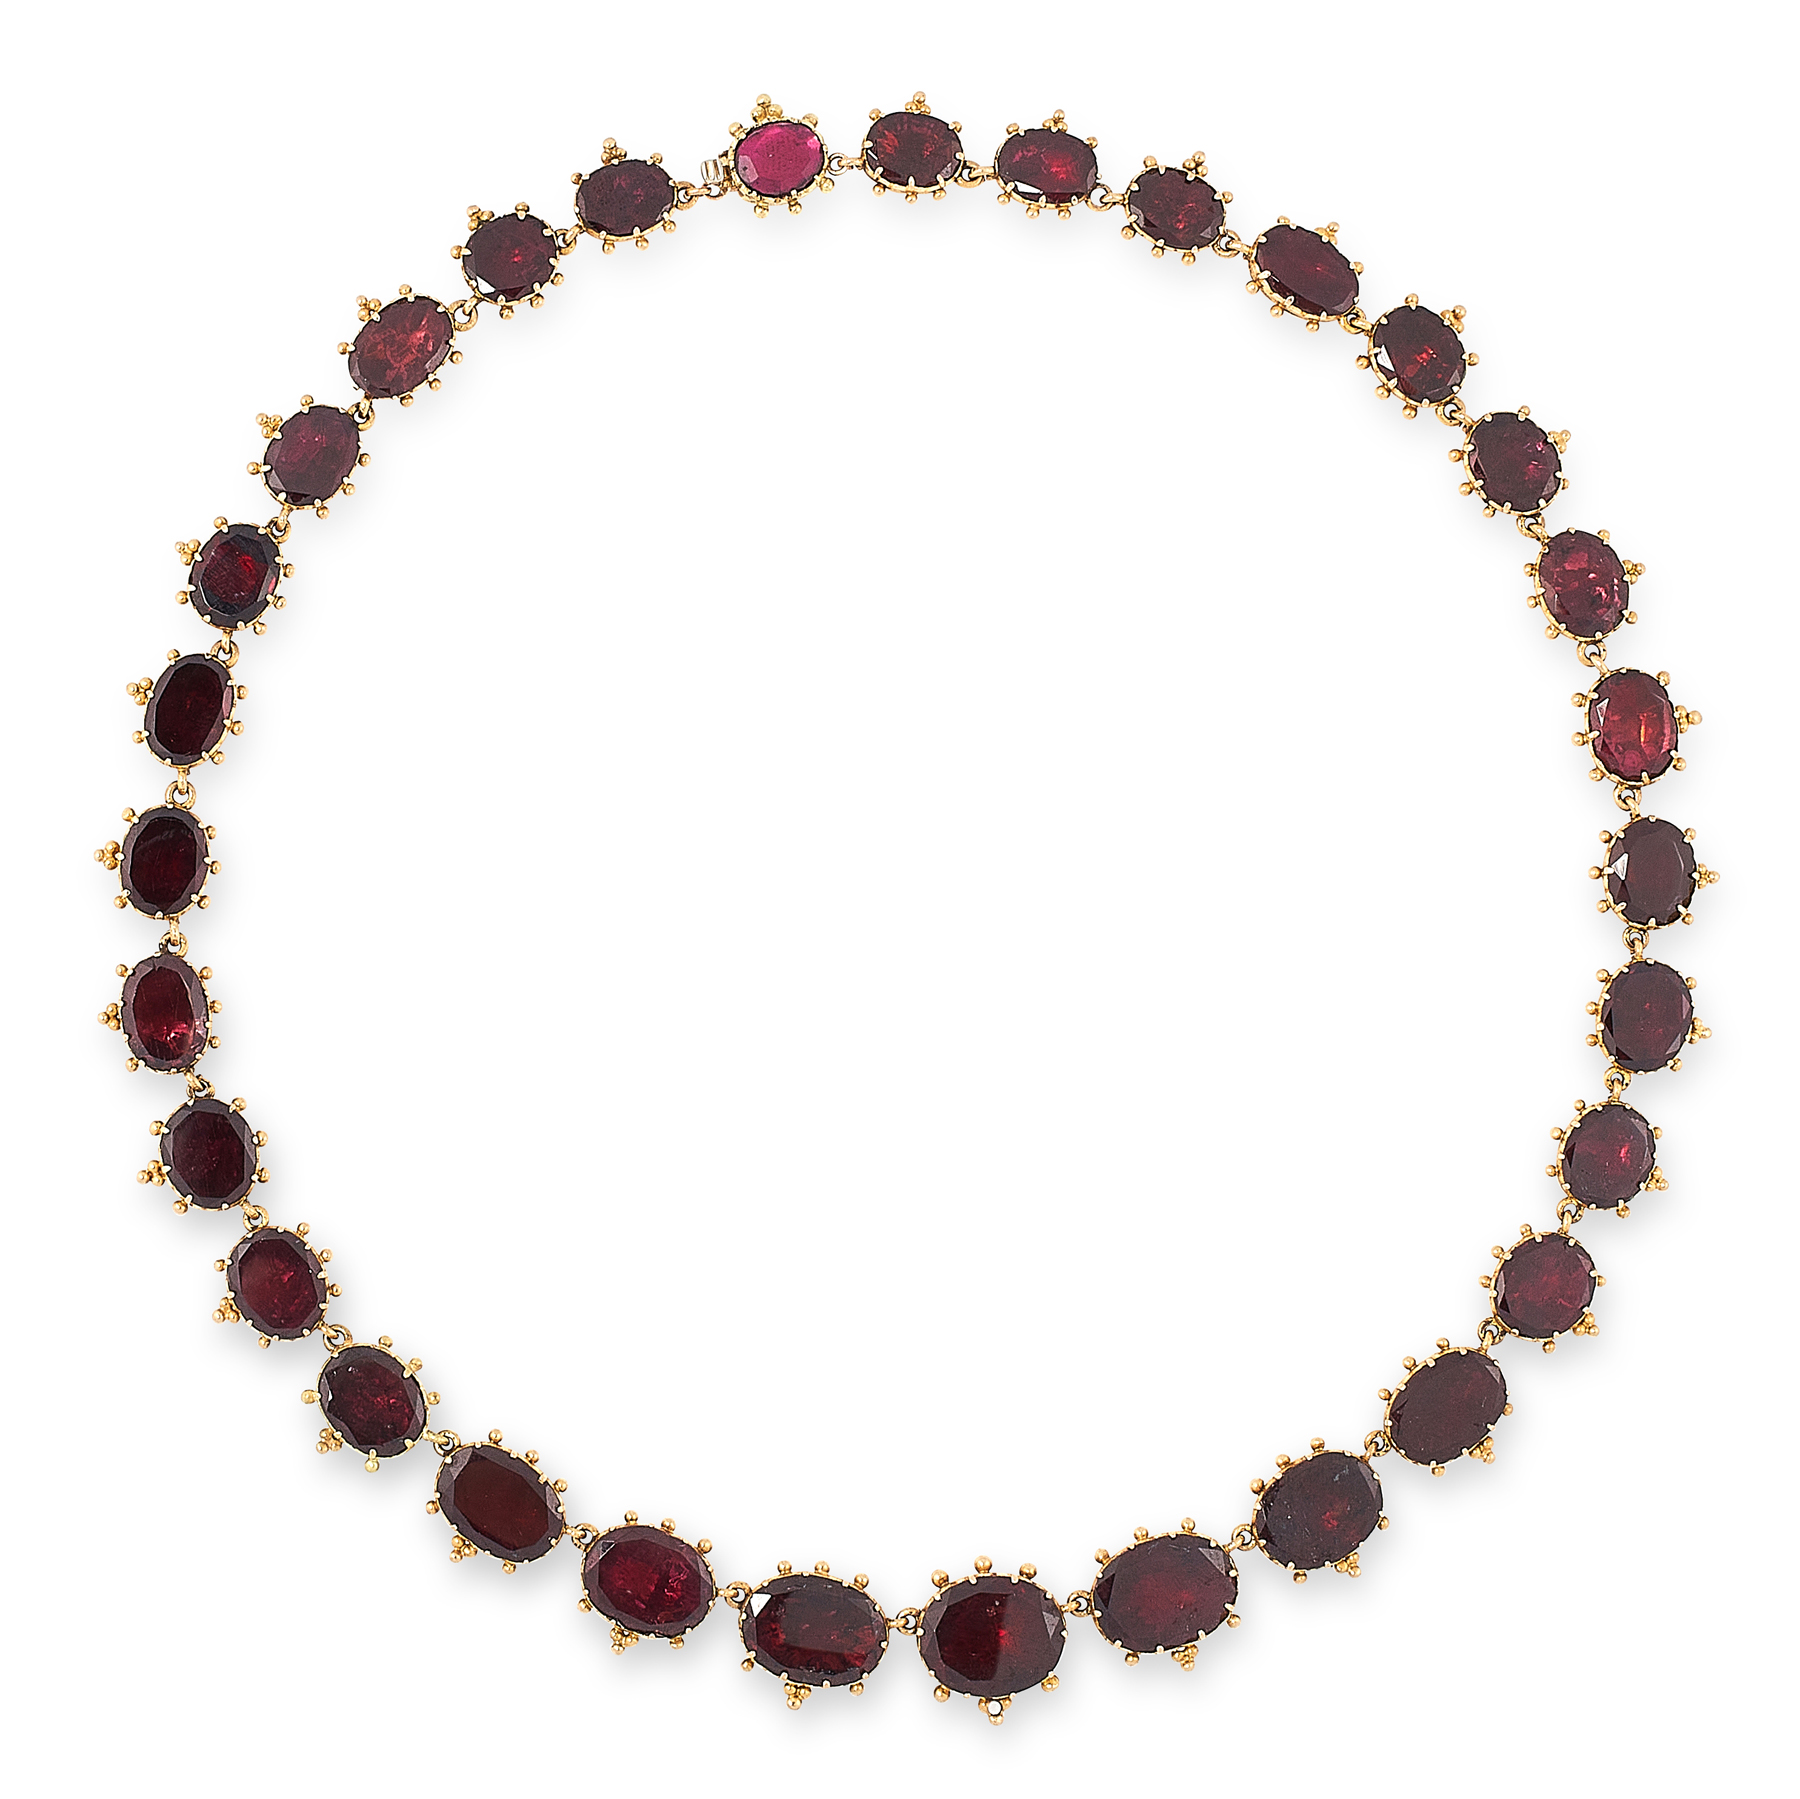 AN ANTIQUE GARNET RIVIERE NECKLACE, 19TH CENTURY in 18ct yellow gold, comprising a single row of